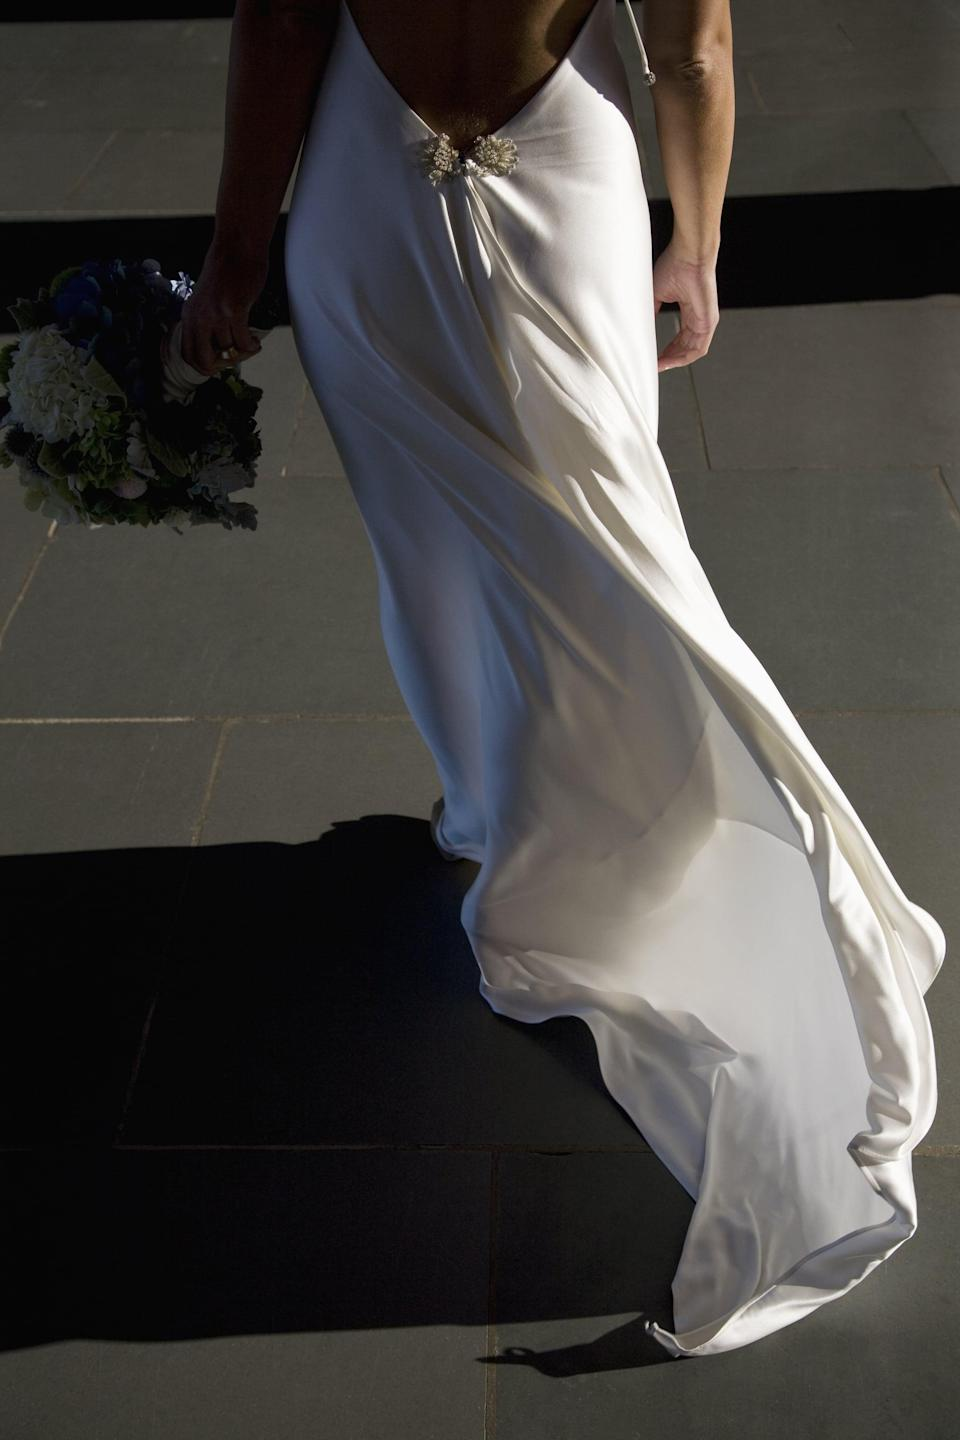 <p>If you're besotted with your dress, let it have its own big moment. A classic shot from the waist down means viewers are forced to take in the gown in all its glory.</p>